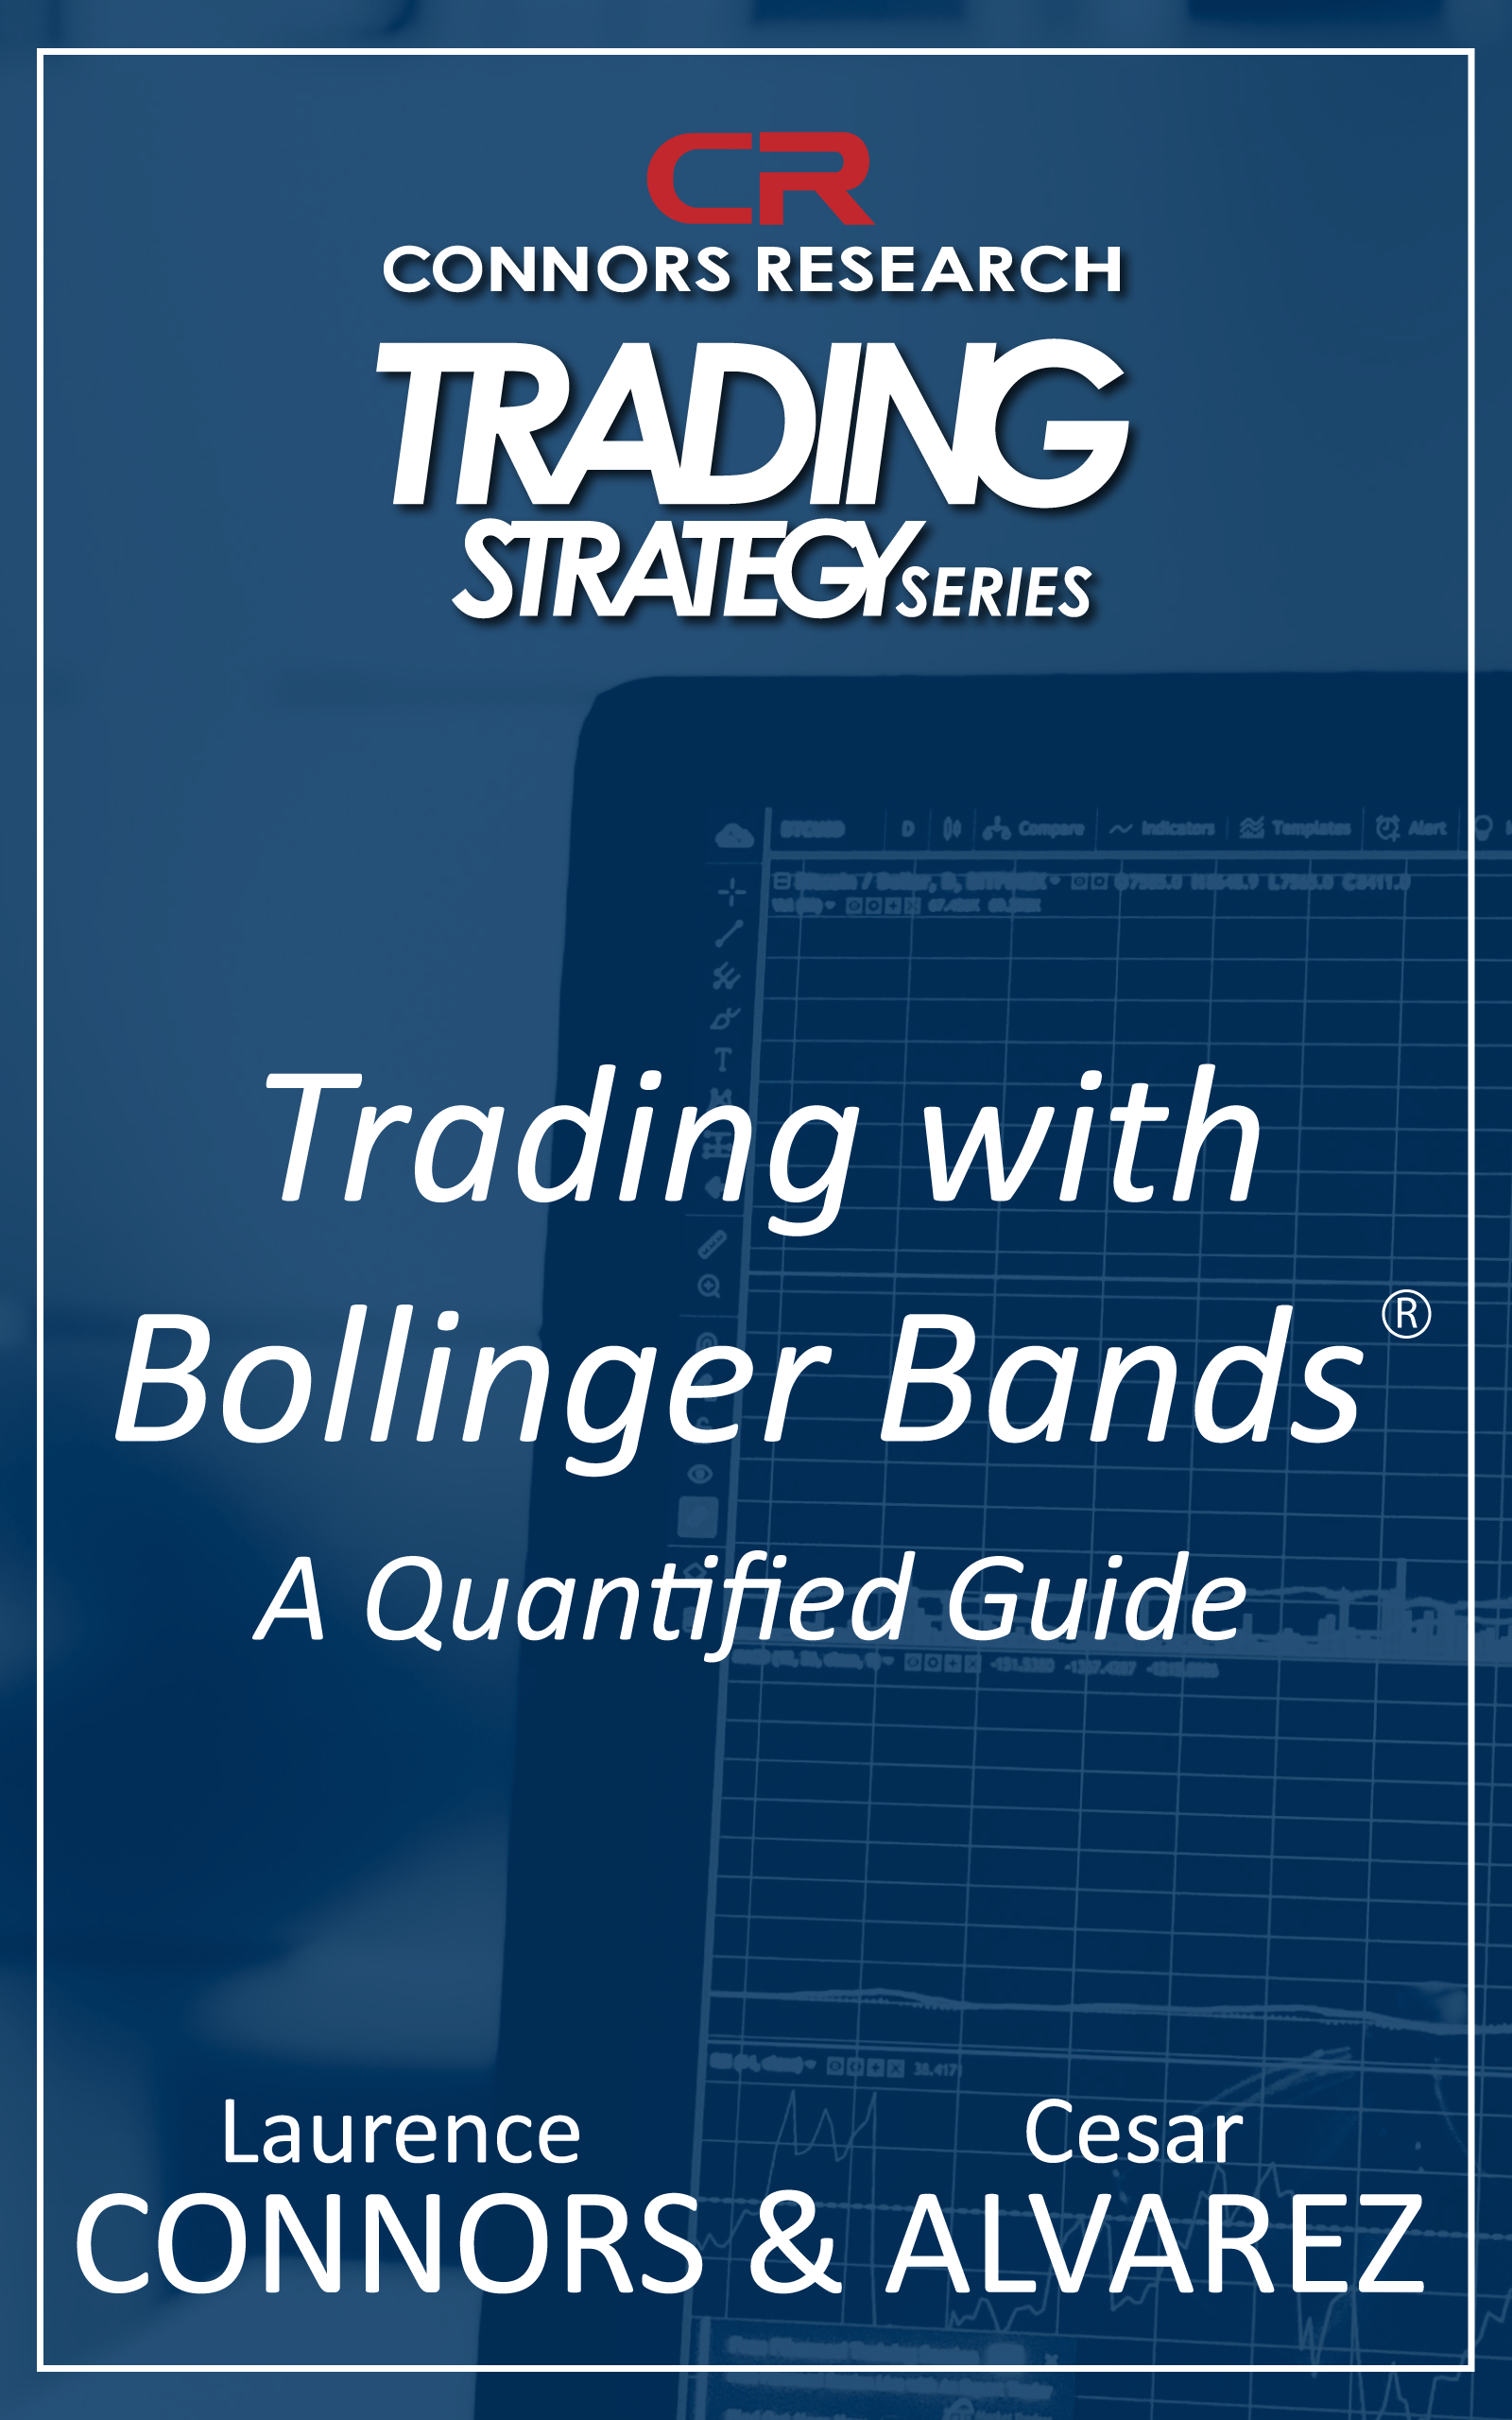 Connors Research Trading Strategy Series: Trading with Bollinger Bands -- A Quantified Guide BOO-CRBOL-D